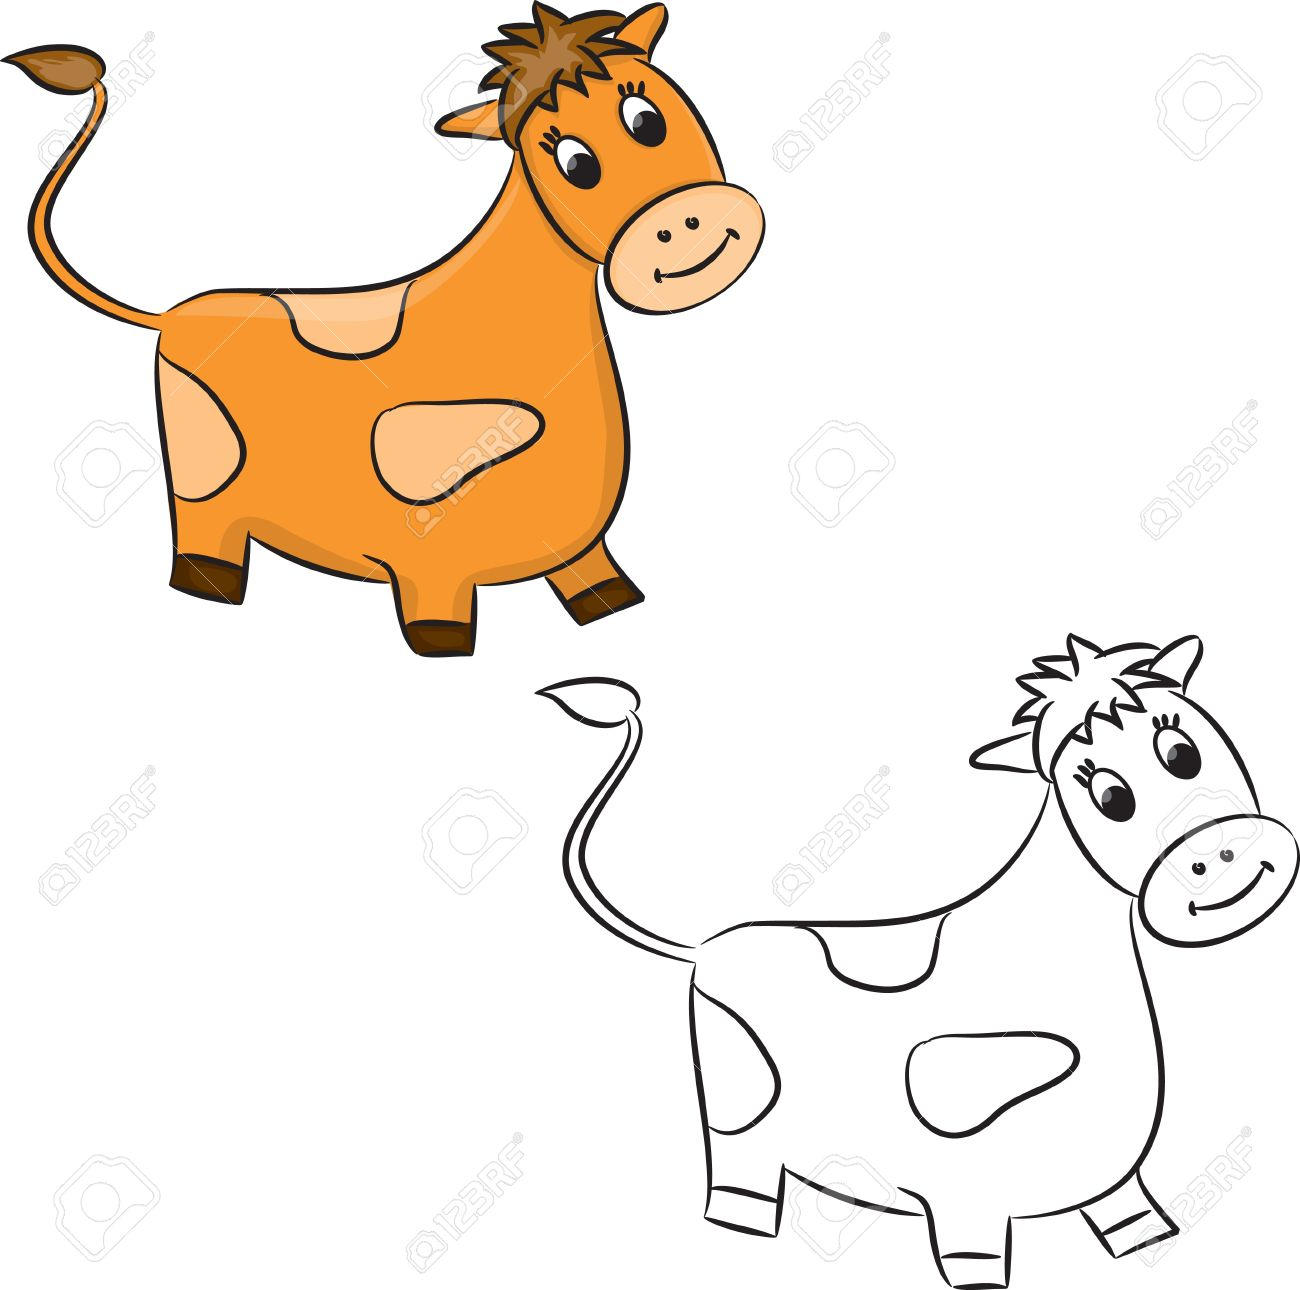 Cartoon cow. Coloring book. Stock Vector - 15655818